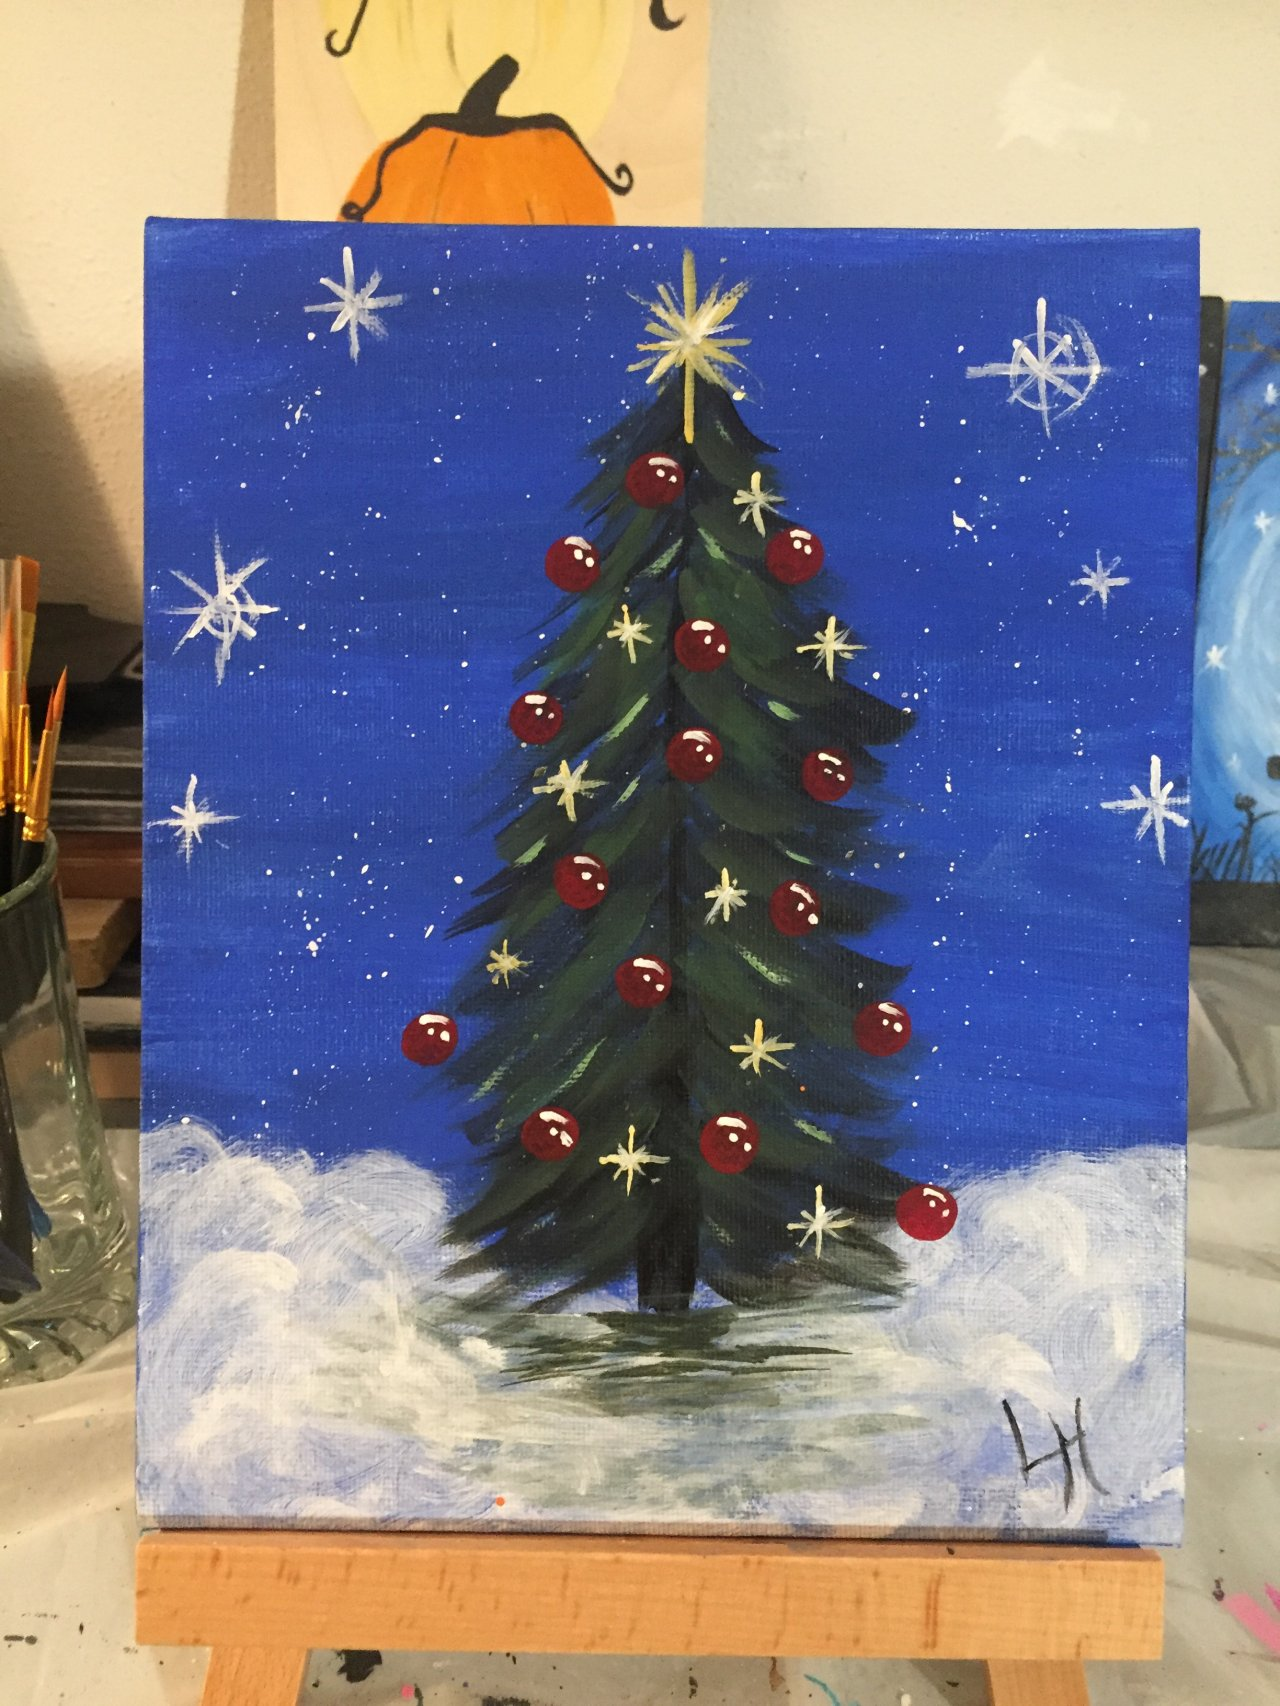 Simple Christmas Tree Step By Step Acrylic Painting On Canvas For Beginners The Art Sherpa